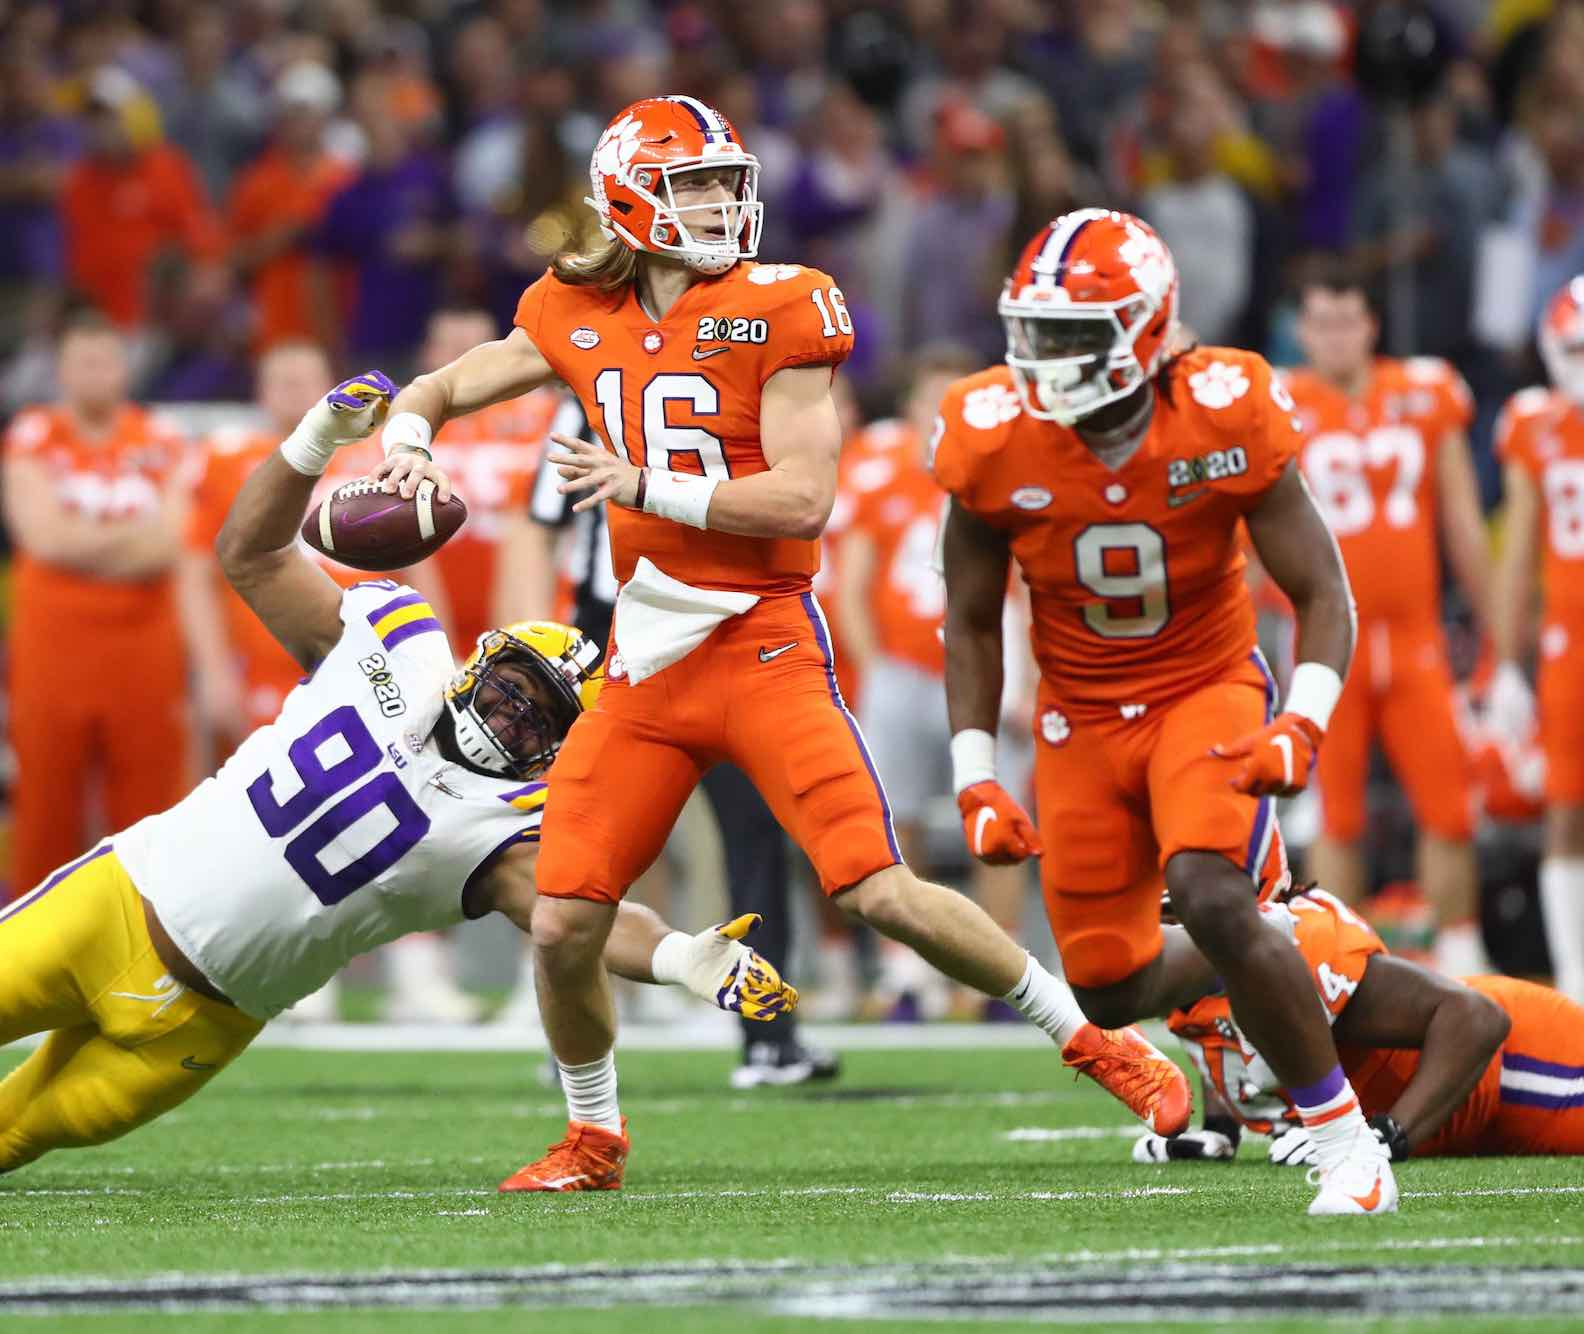 The Notre Dame vs Clemson game is easily the biggest Pac-12 game in week 10. Read more here on how to watch the game.